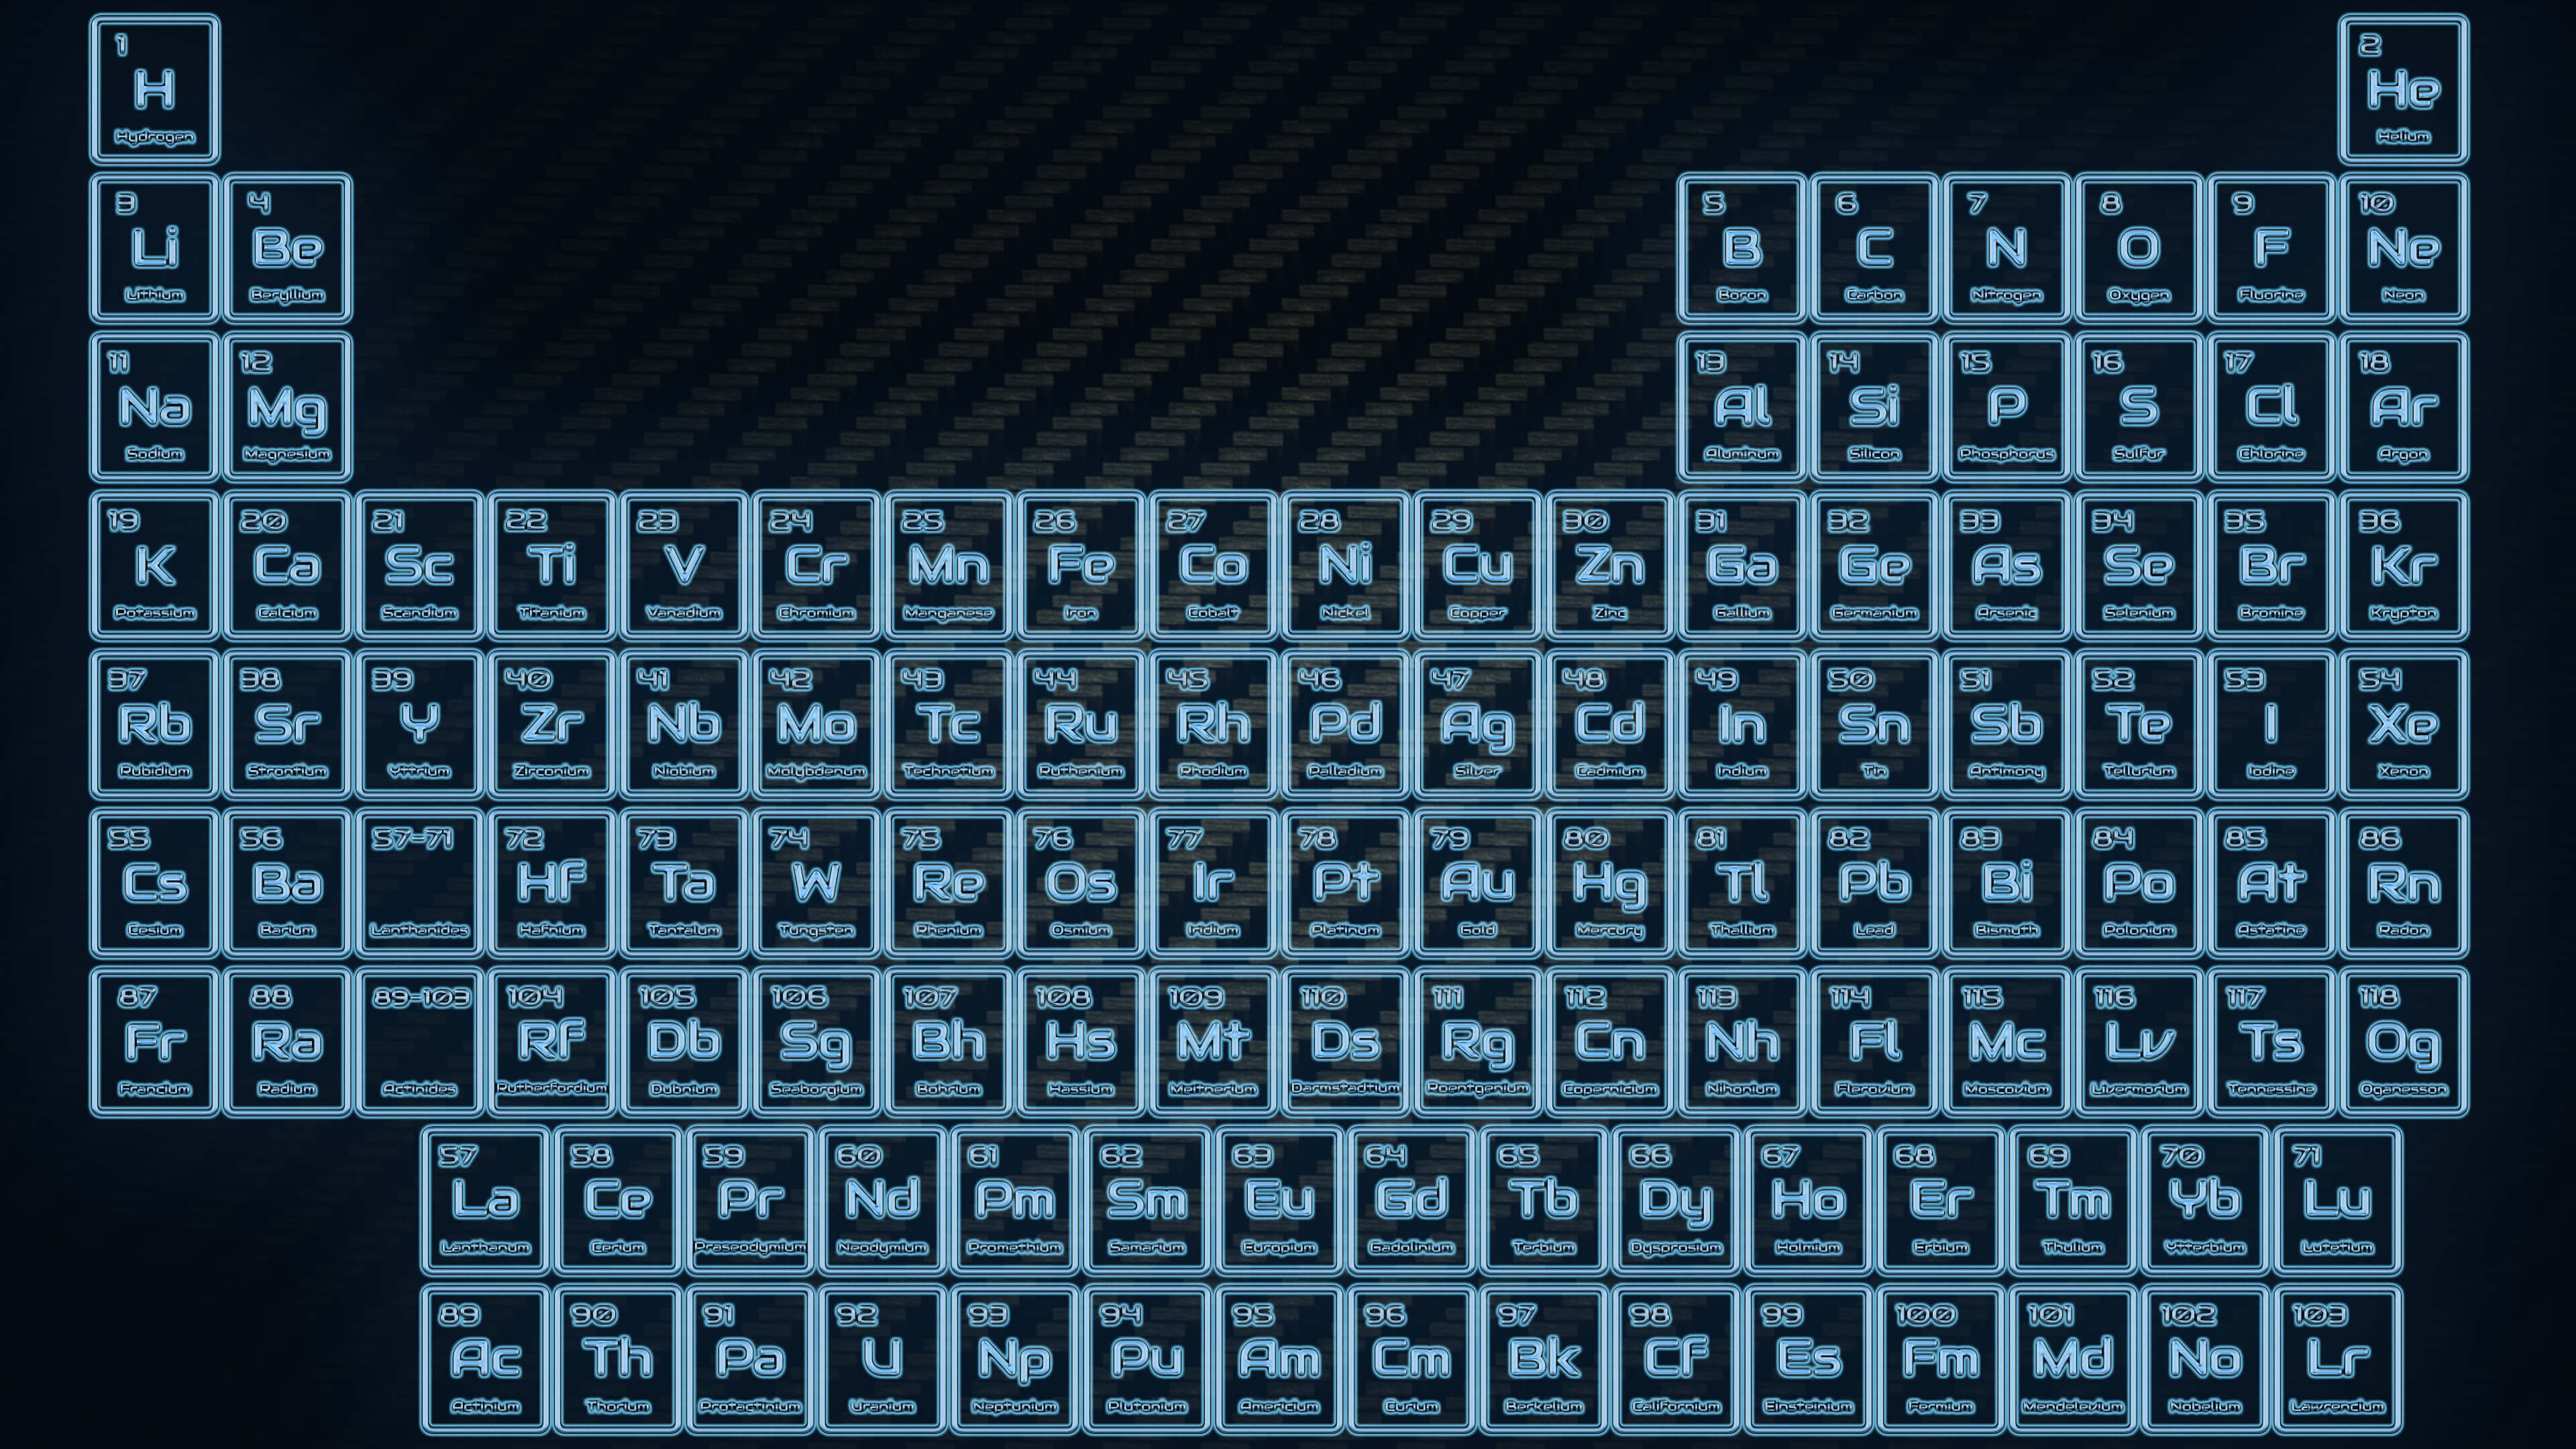 Blue Neon Glowing Tube Periodic Table Wallpaper